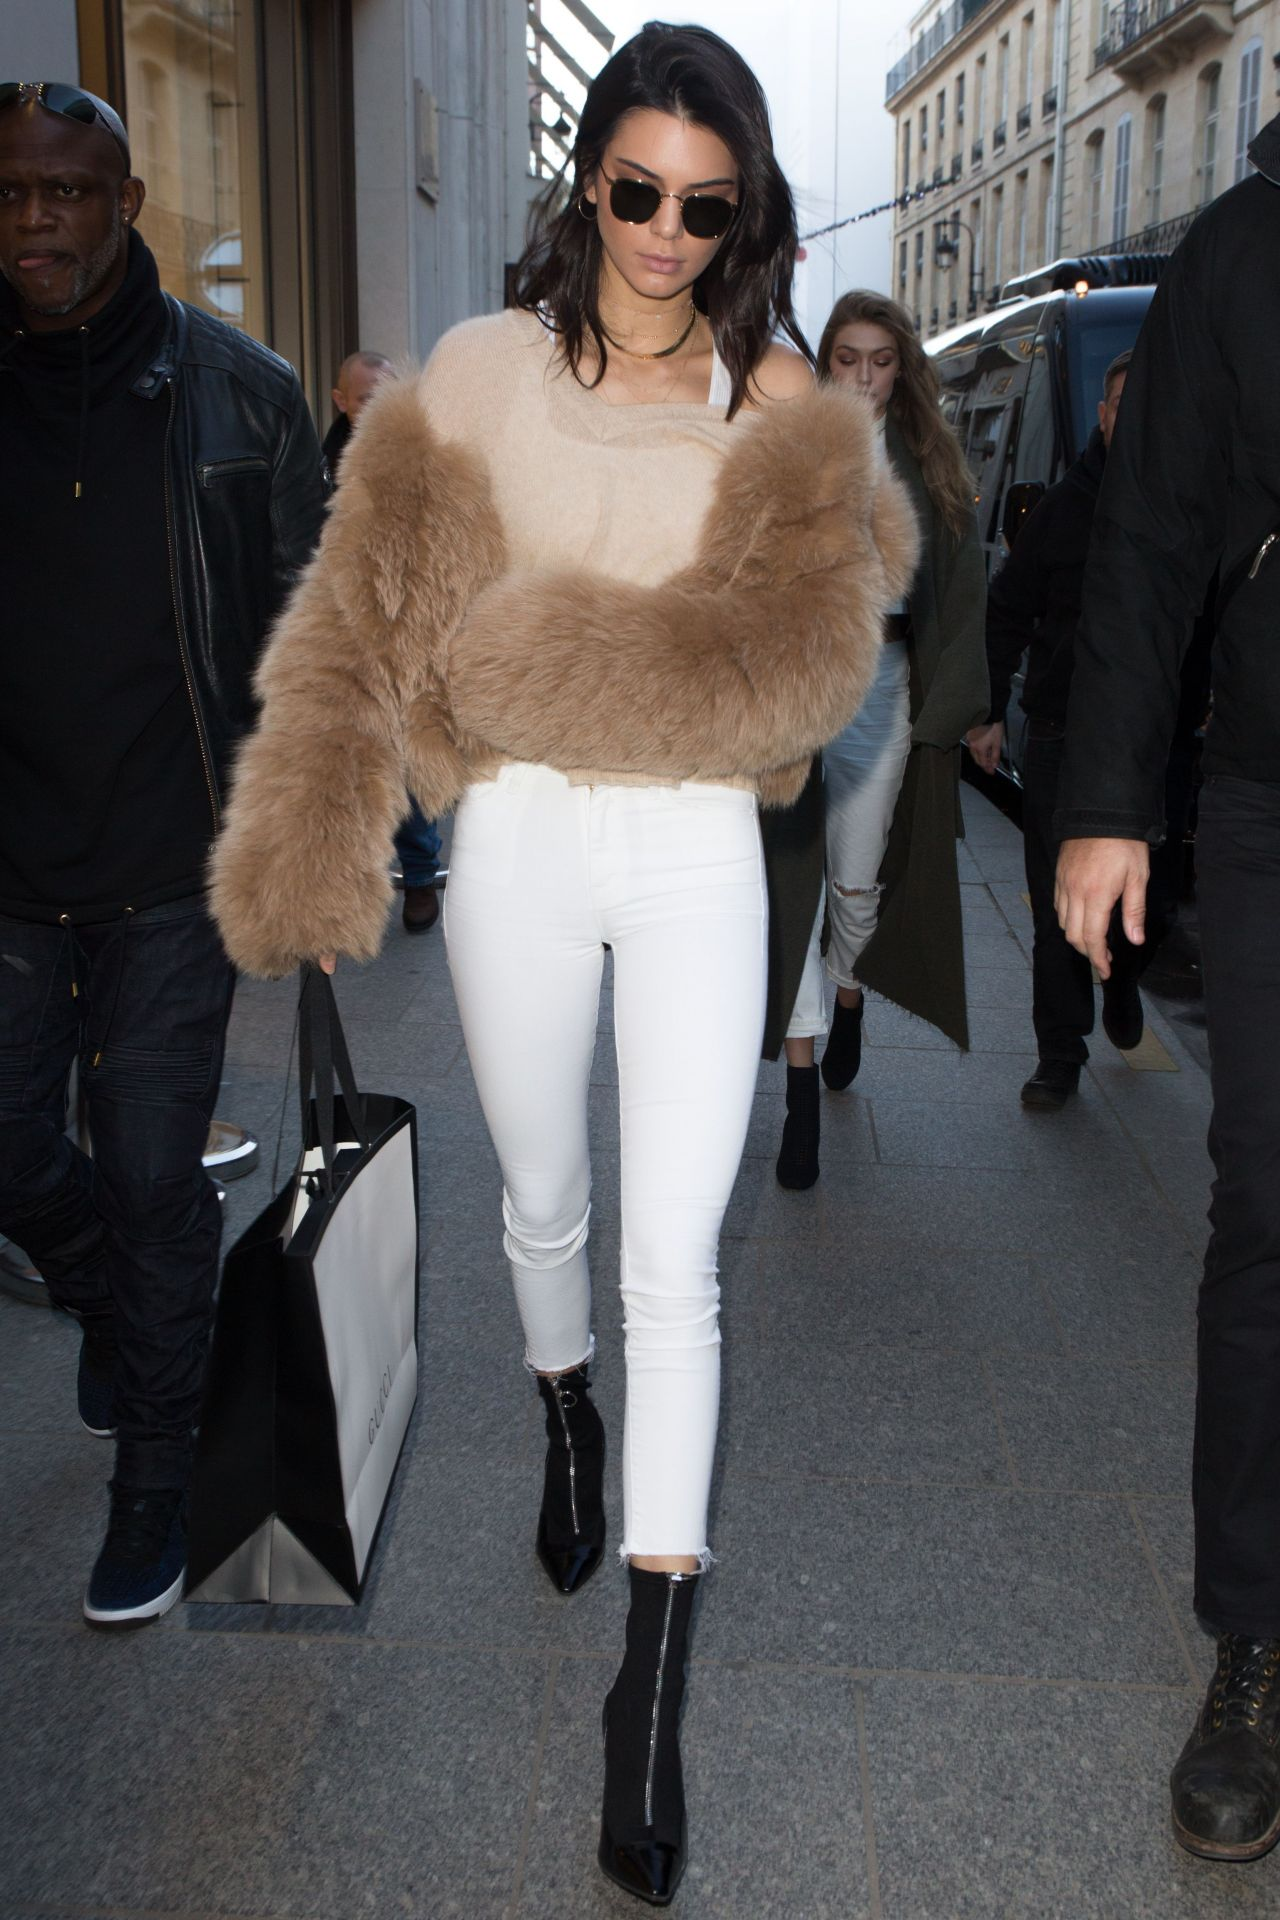 Gigi Hadid And Kendall Jenner Leave Their Hotel In Paris